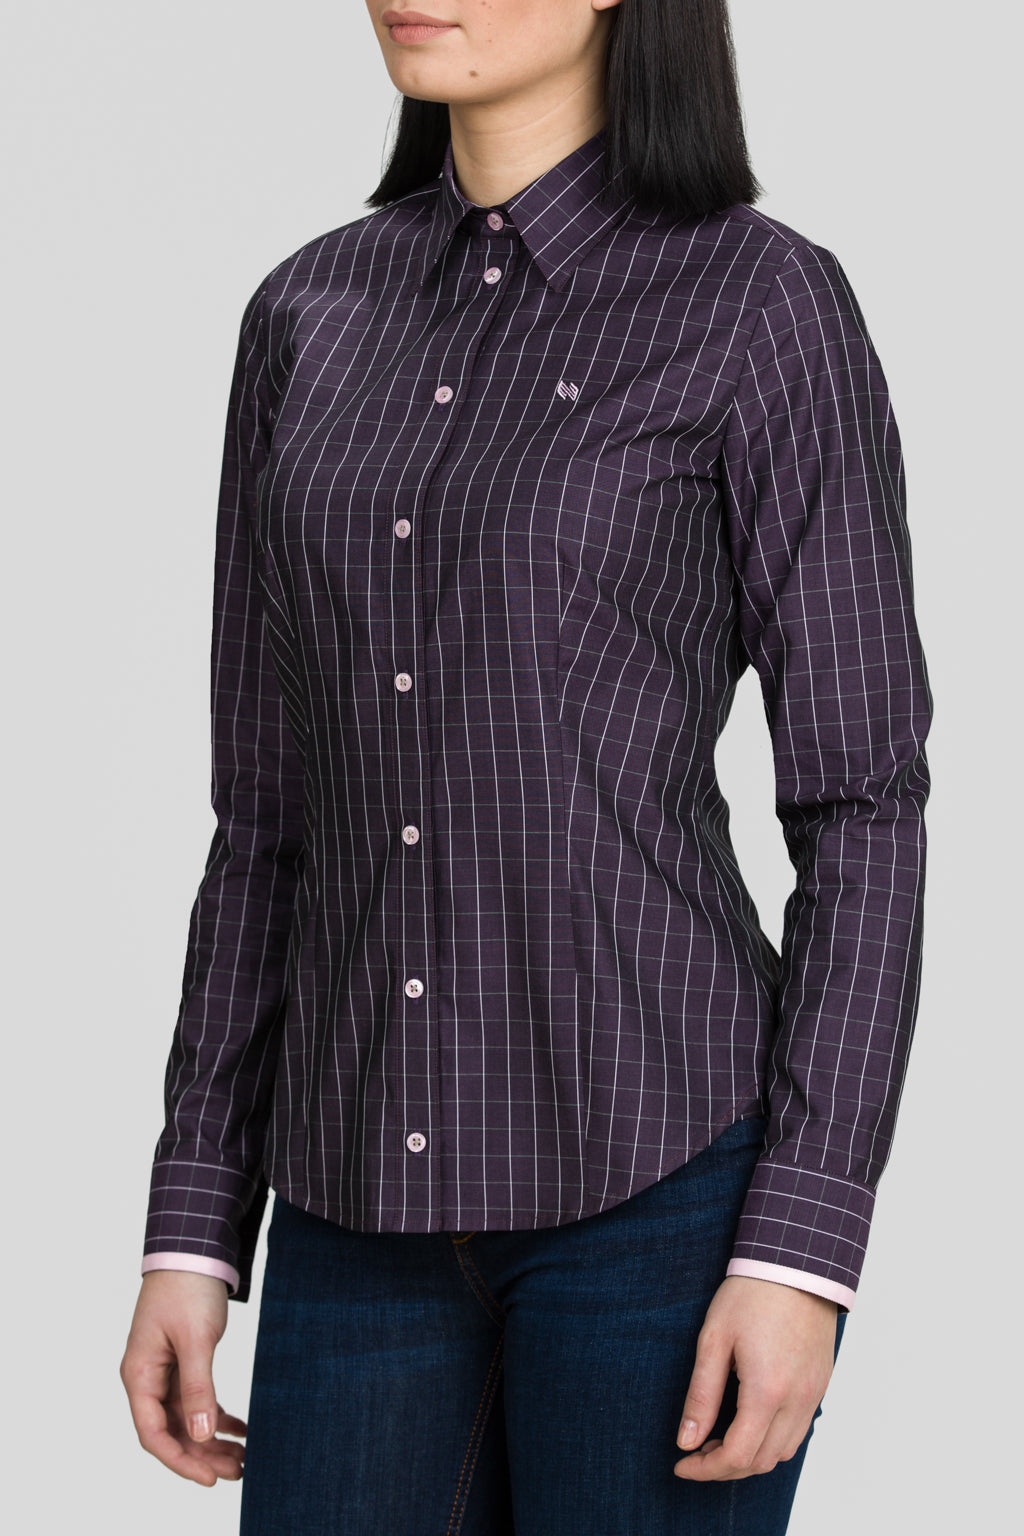 FRIGG ORIGINAL SLIM FIT SHIRT - UPDATED PATTERN W/WIDER WAIST